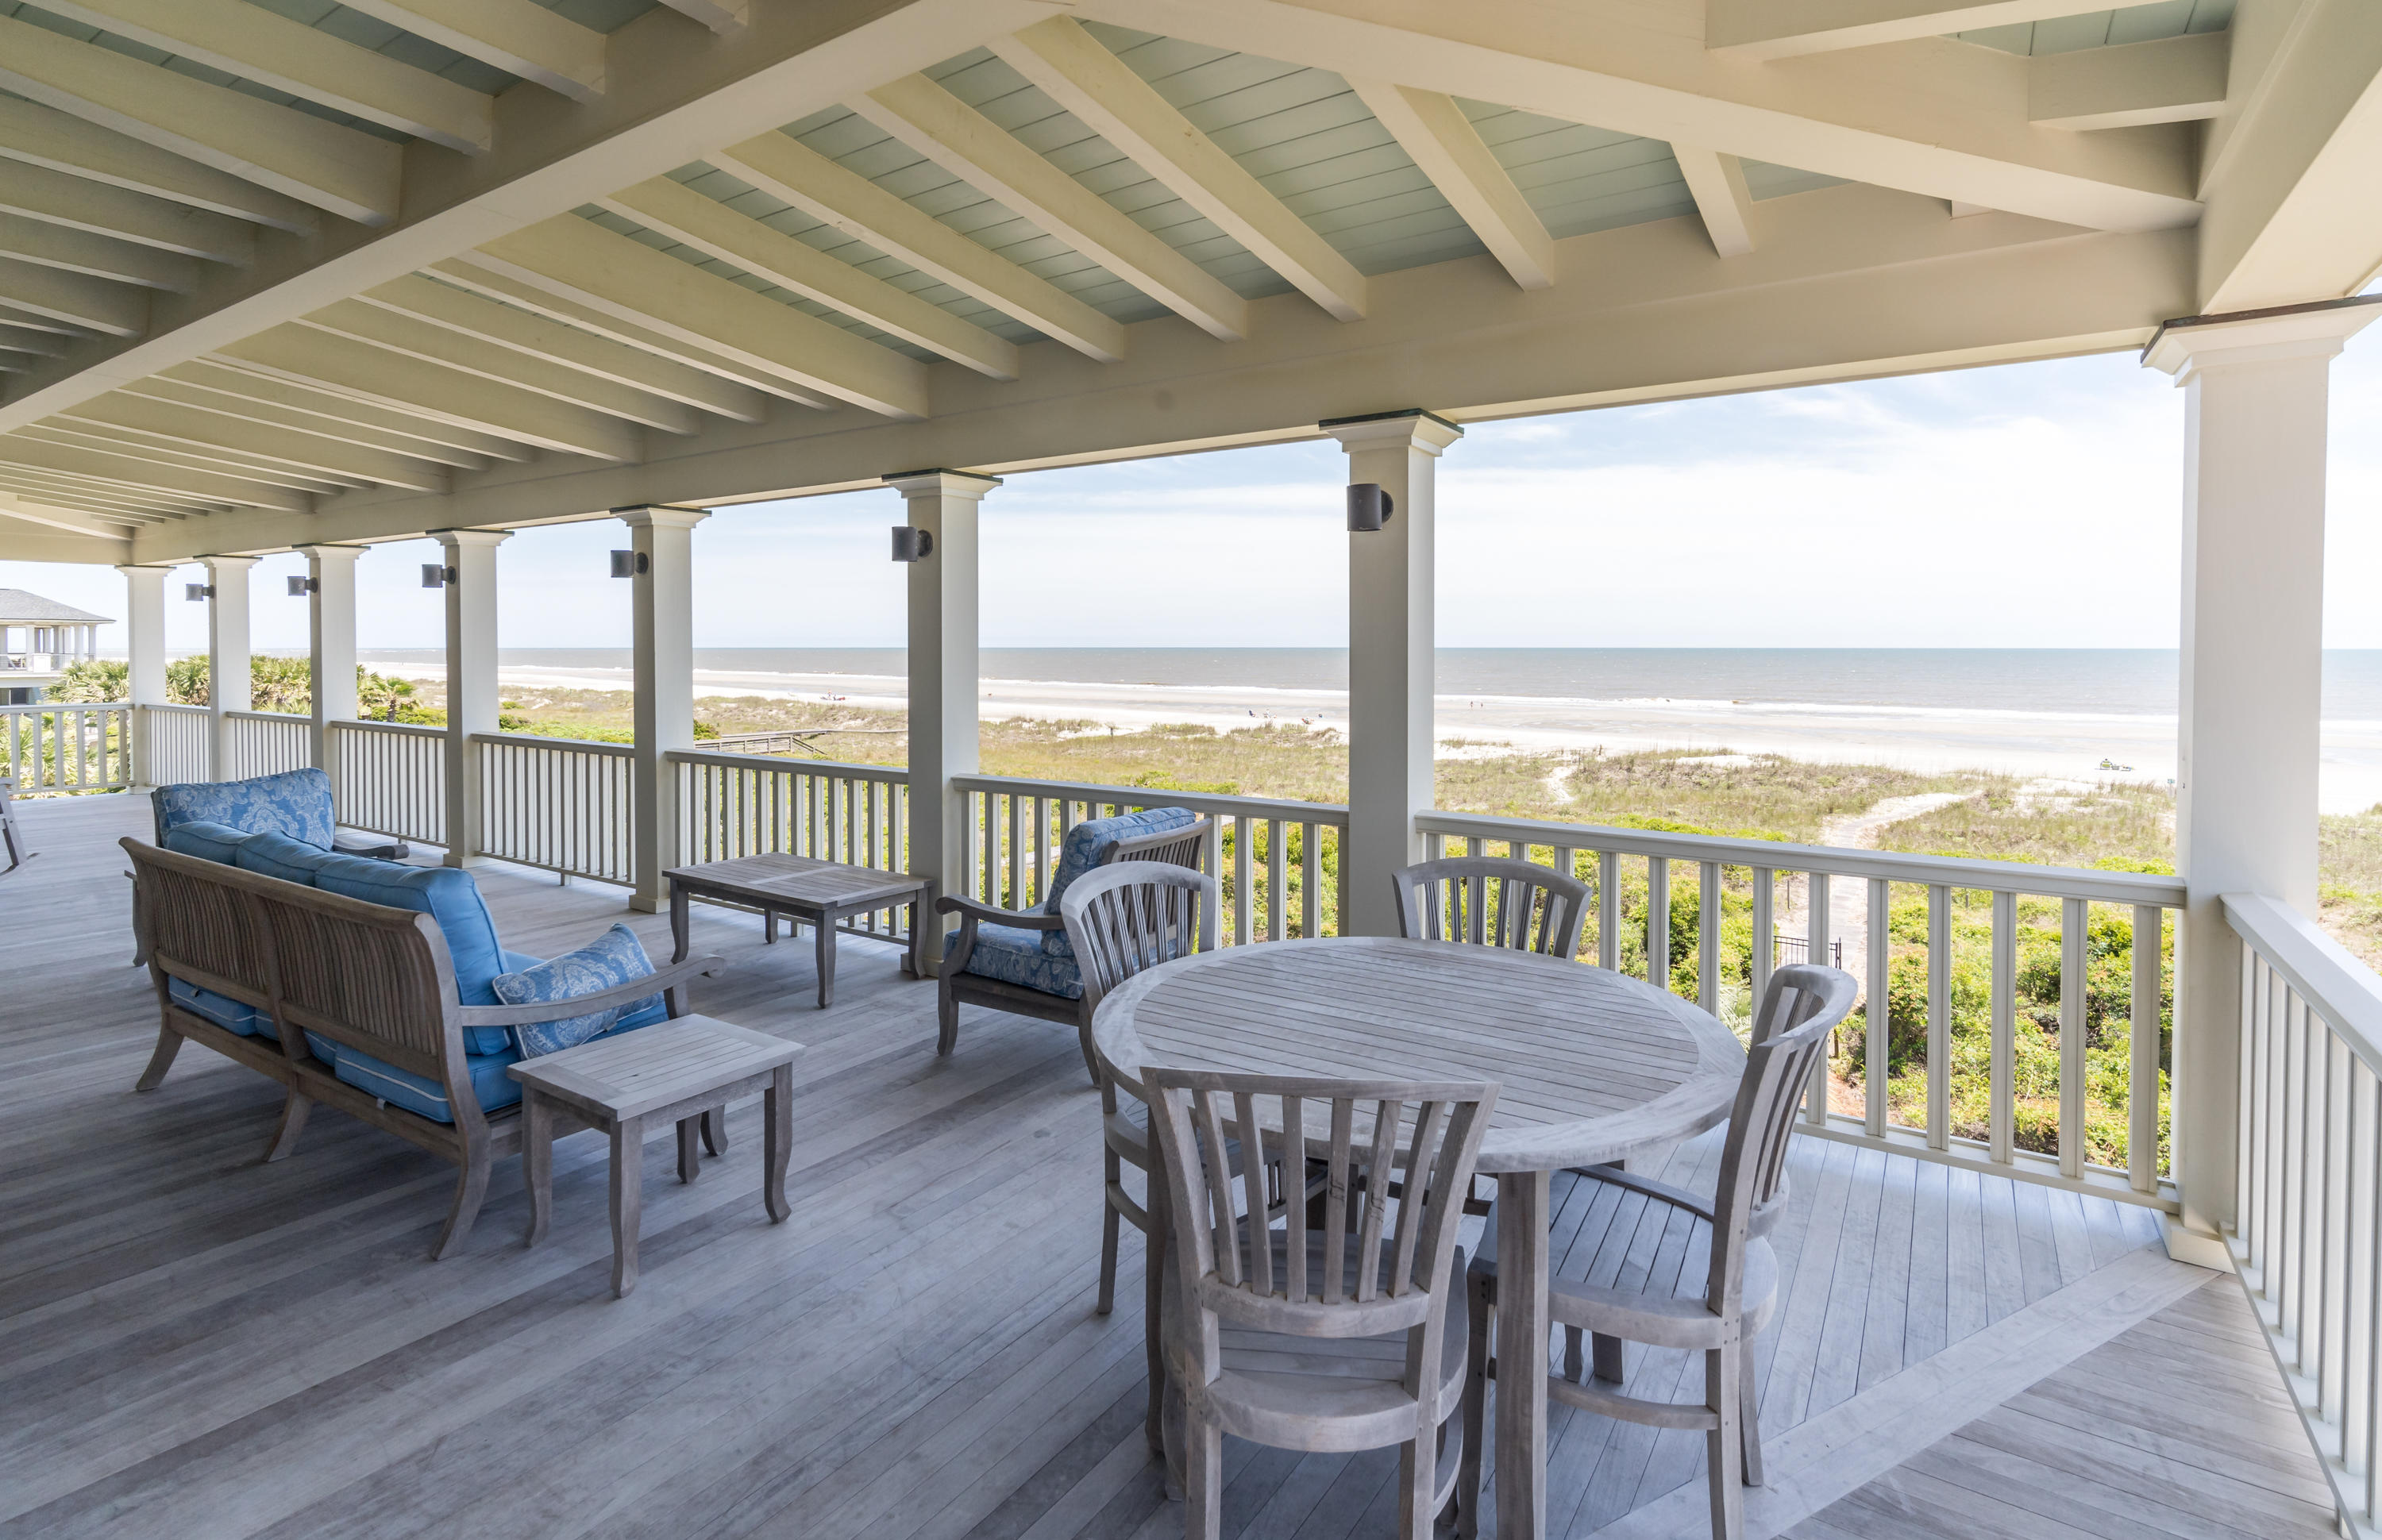 Isle of Palms Homes For Sale - 2 45th, Isle of Palms, SC - 43